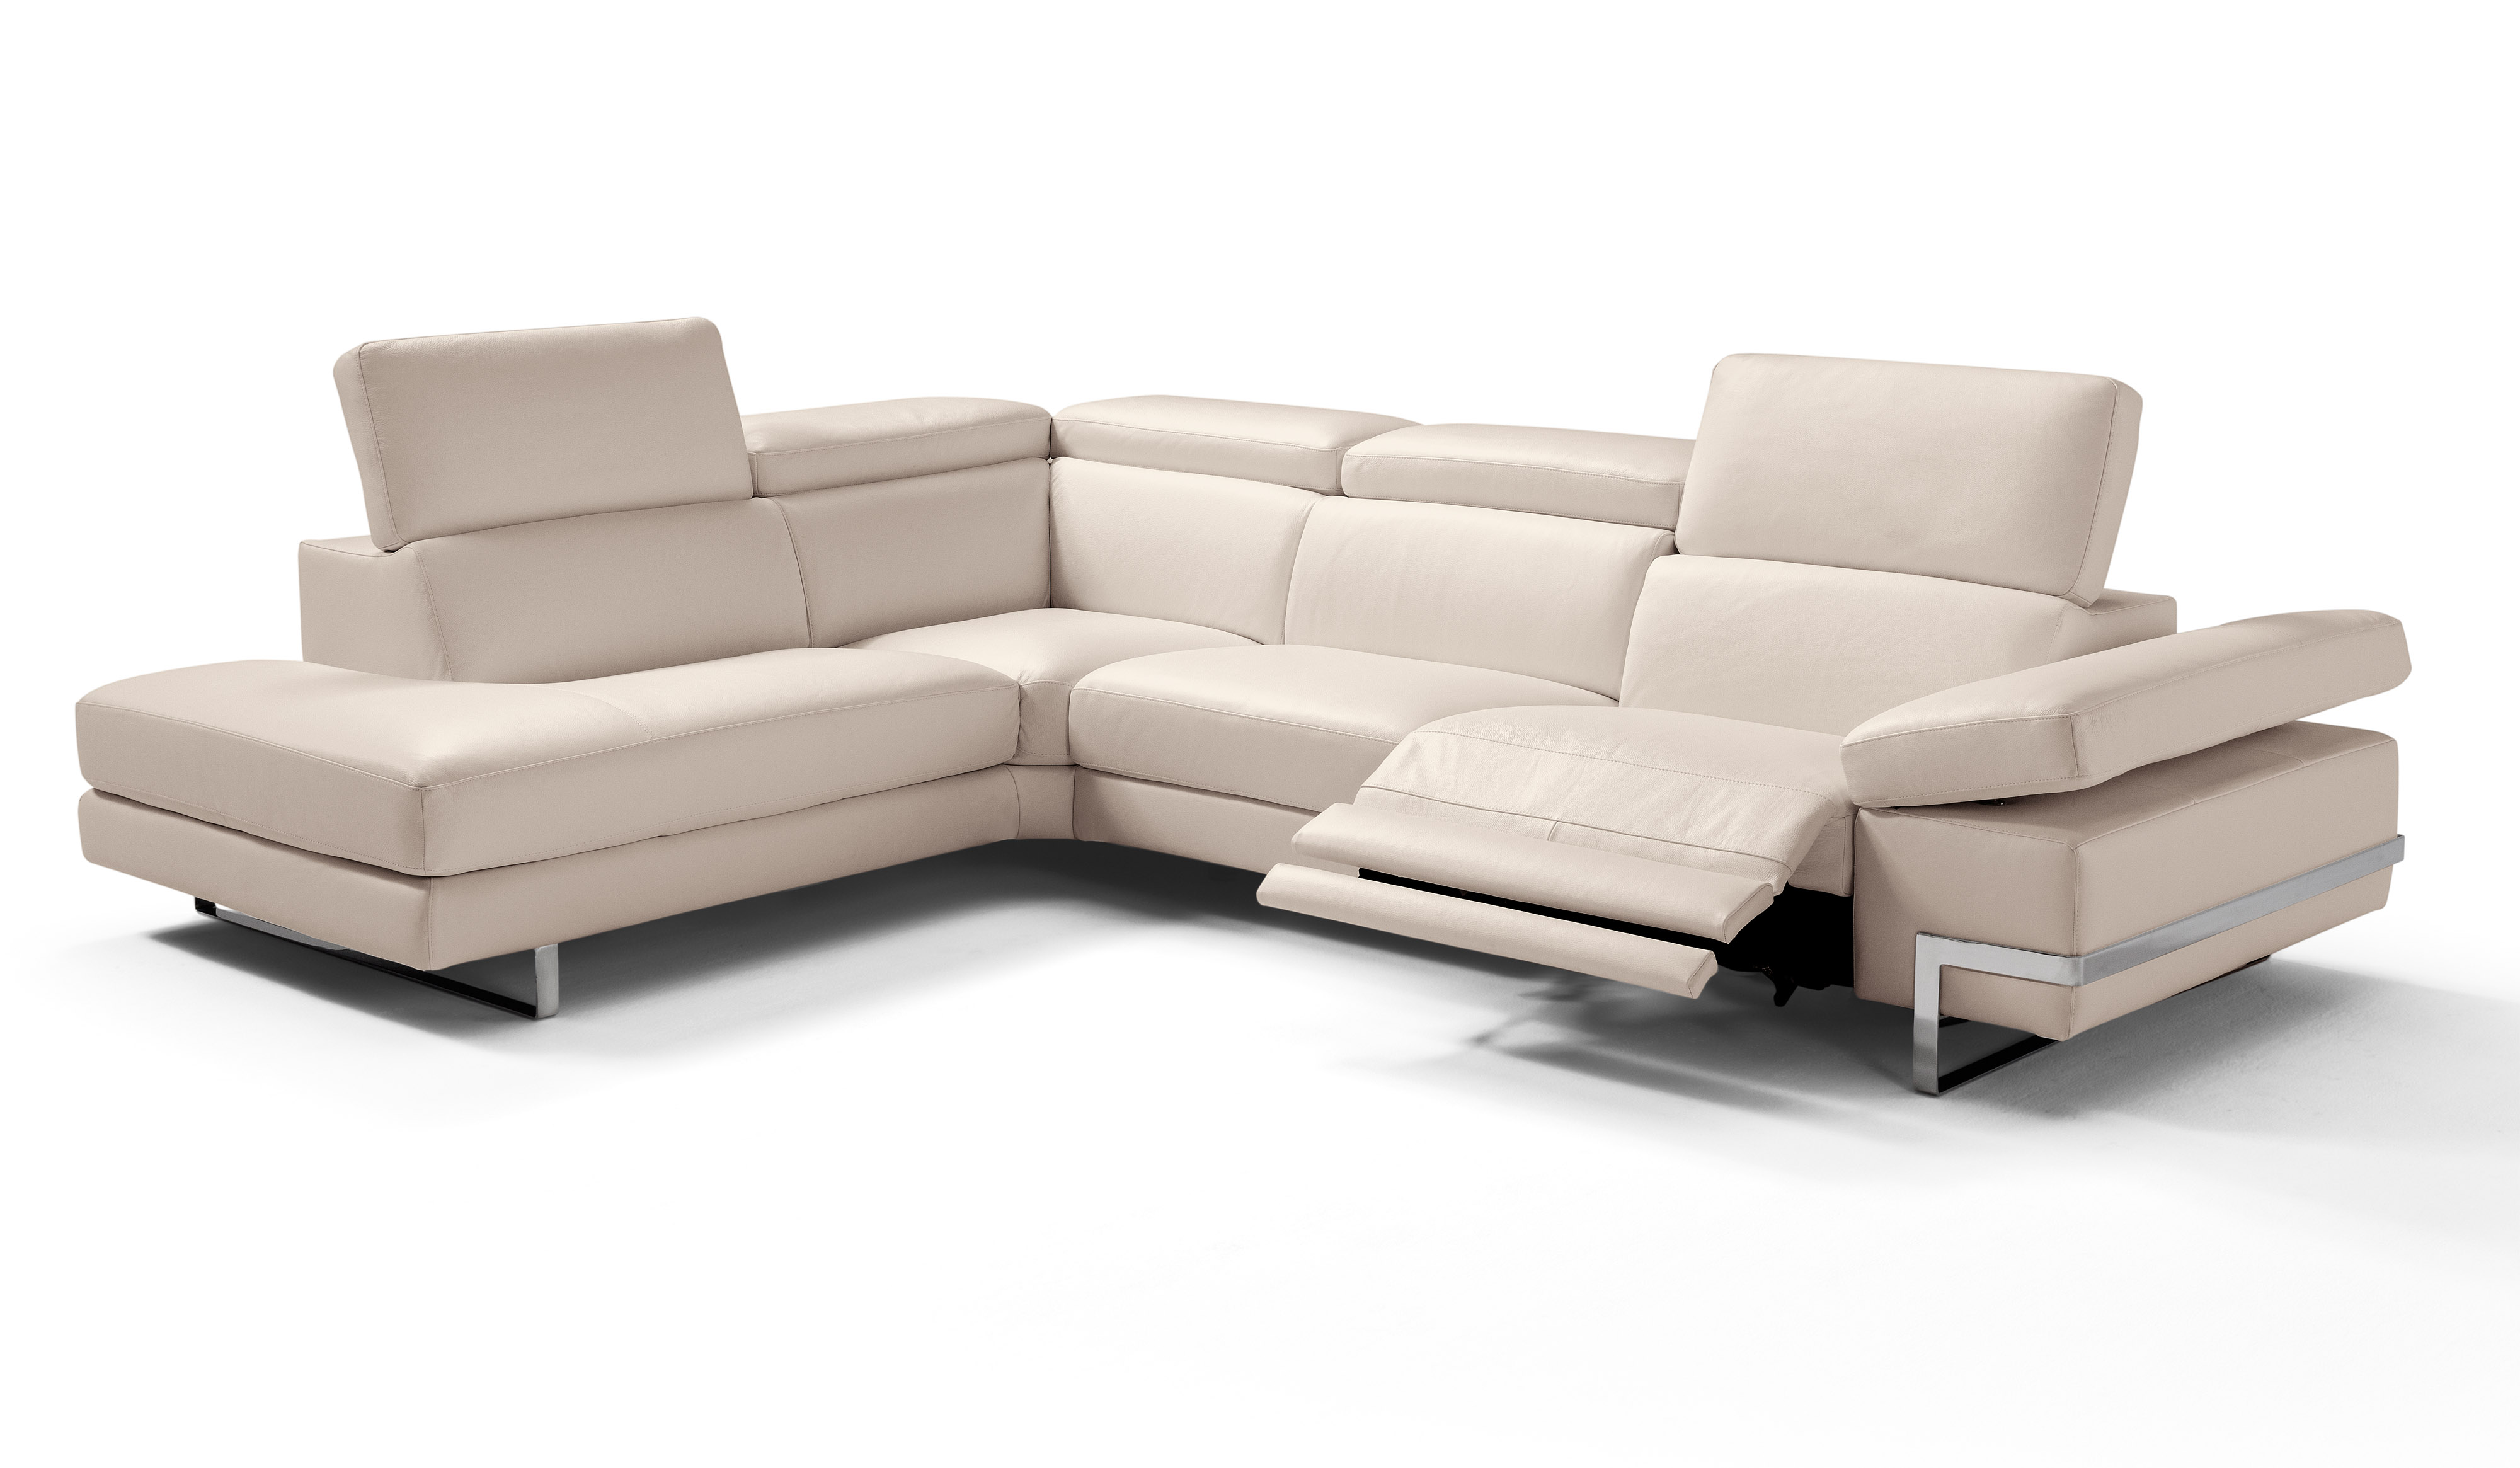 leather corner sofa spain furniture choice luxury italian sectional upholstery albuquerque new mexico